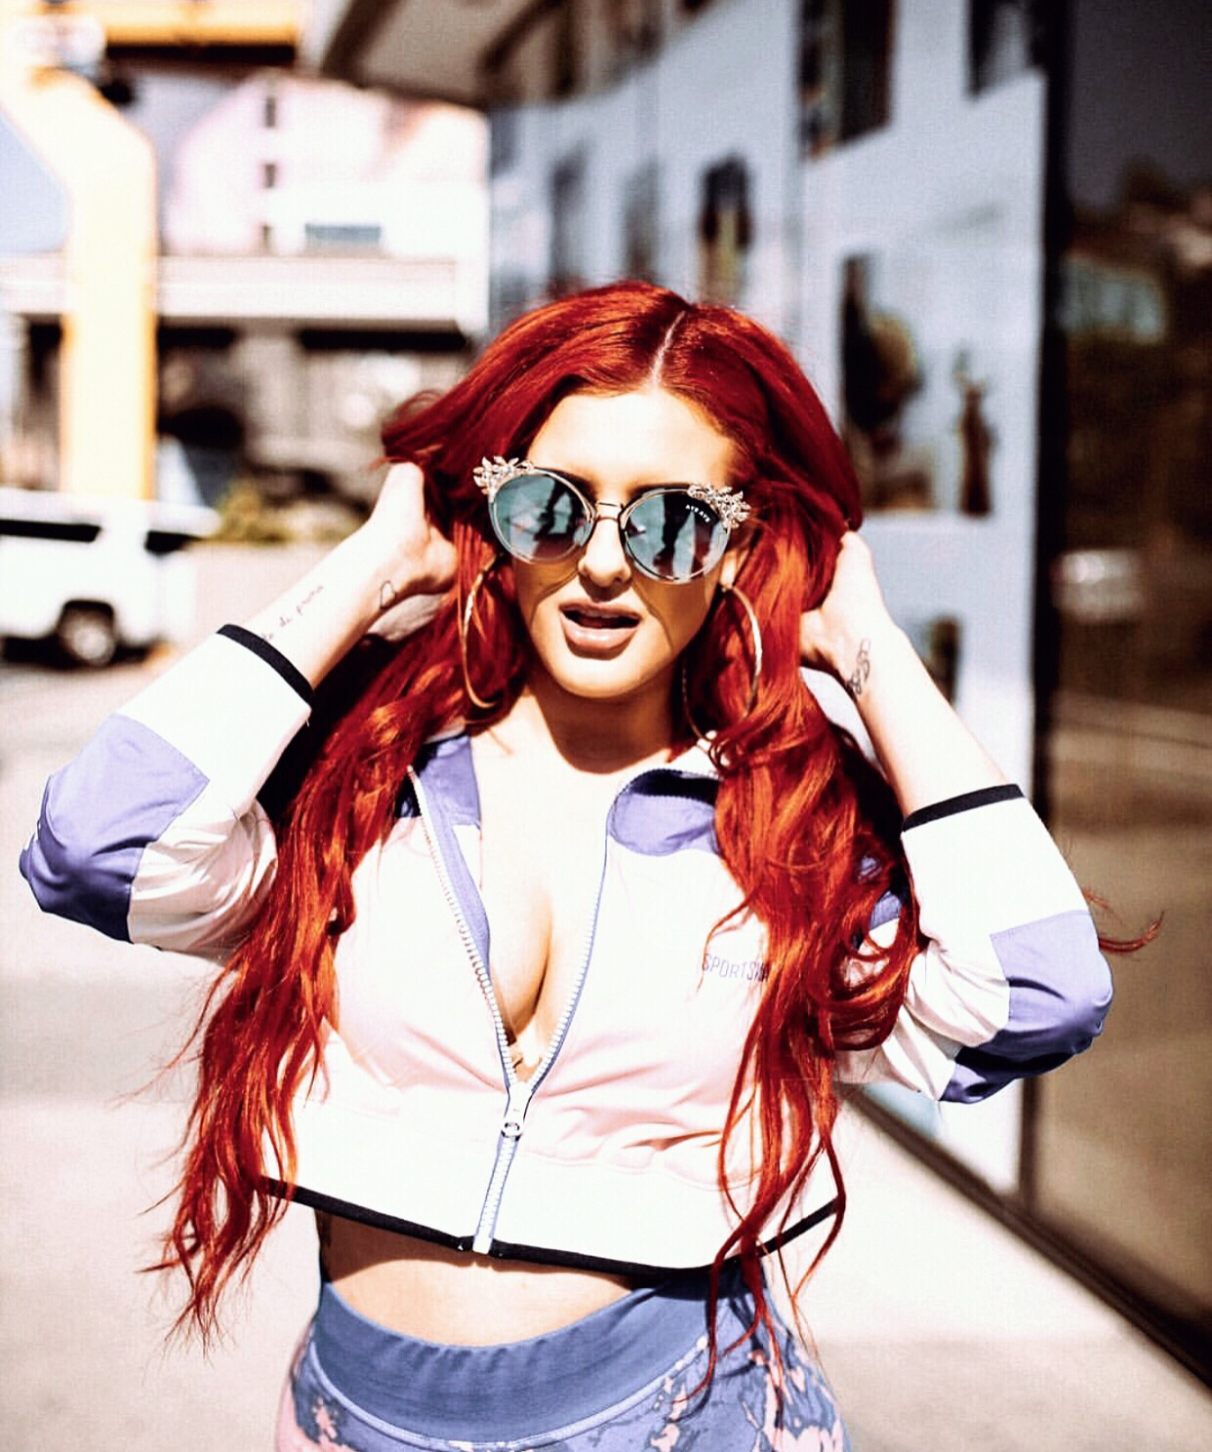 Justina Valentine - Justina Valentine is an American rapper, singer, songwriter and model from Passaic County, New Jersey, best known for her singles